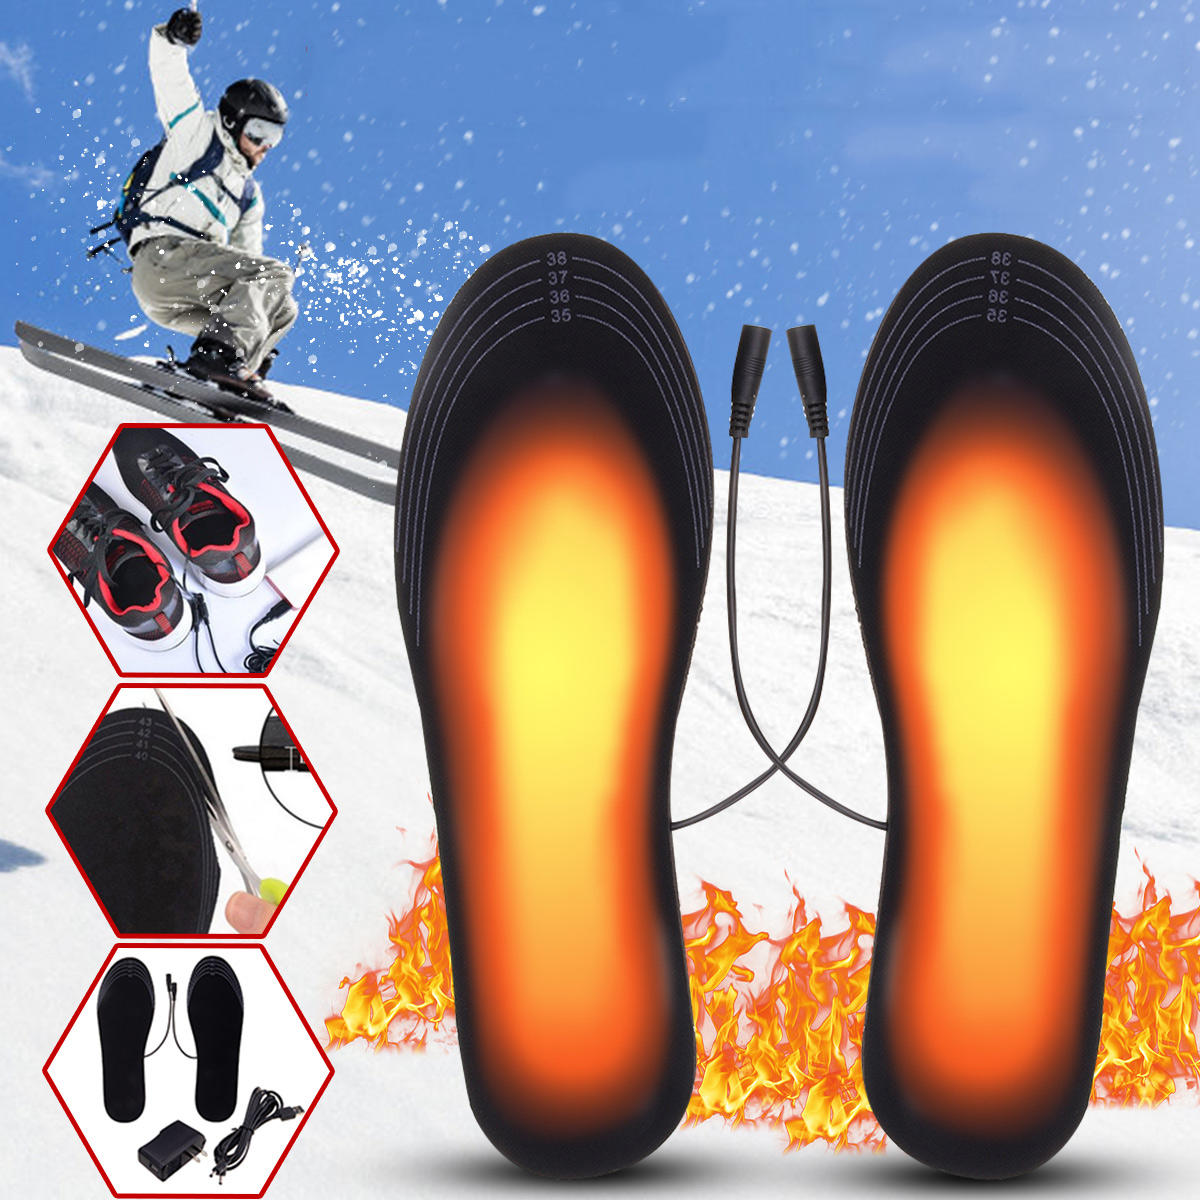 Ευρωπαϊκή αποθήκη | 5V 2A Electric Heated Feet Shoe Insole USB Foot Heater Warmer Breathable Deodorant With Adapter